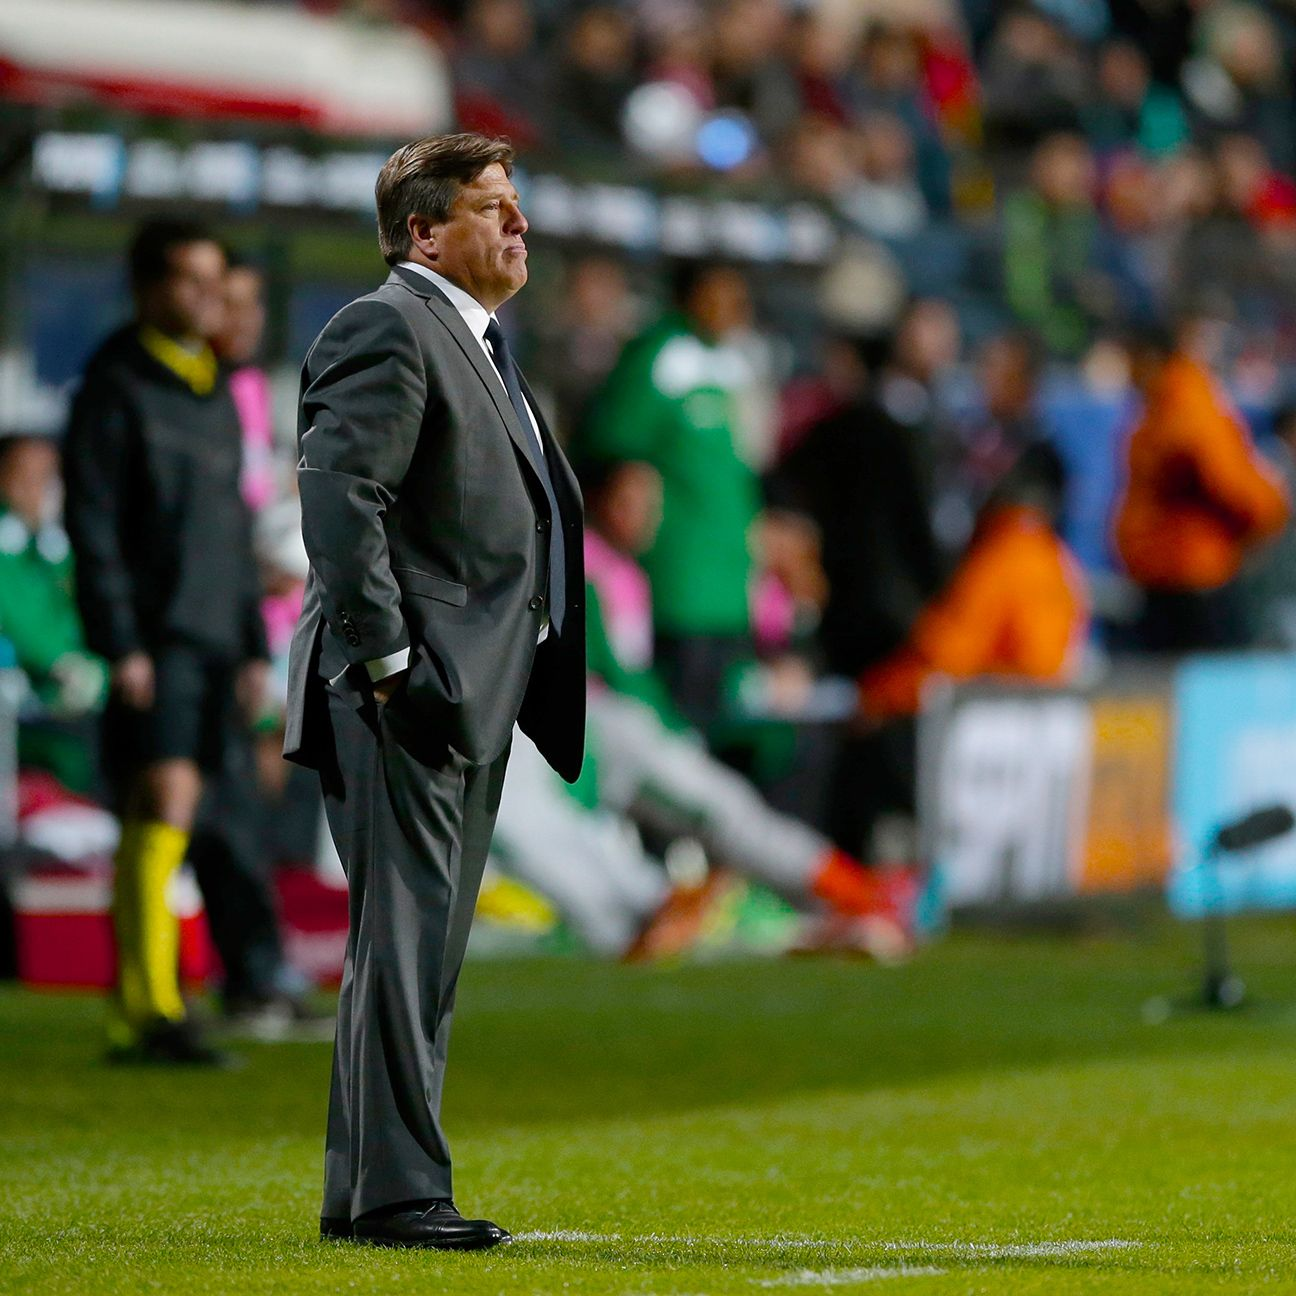 Miguel Herrera's Mexico will likely need a victory against either Chile or Ecuador if they are to advance to the knockout phase of the Copa America.